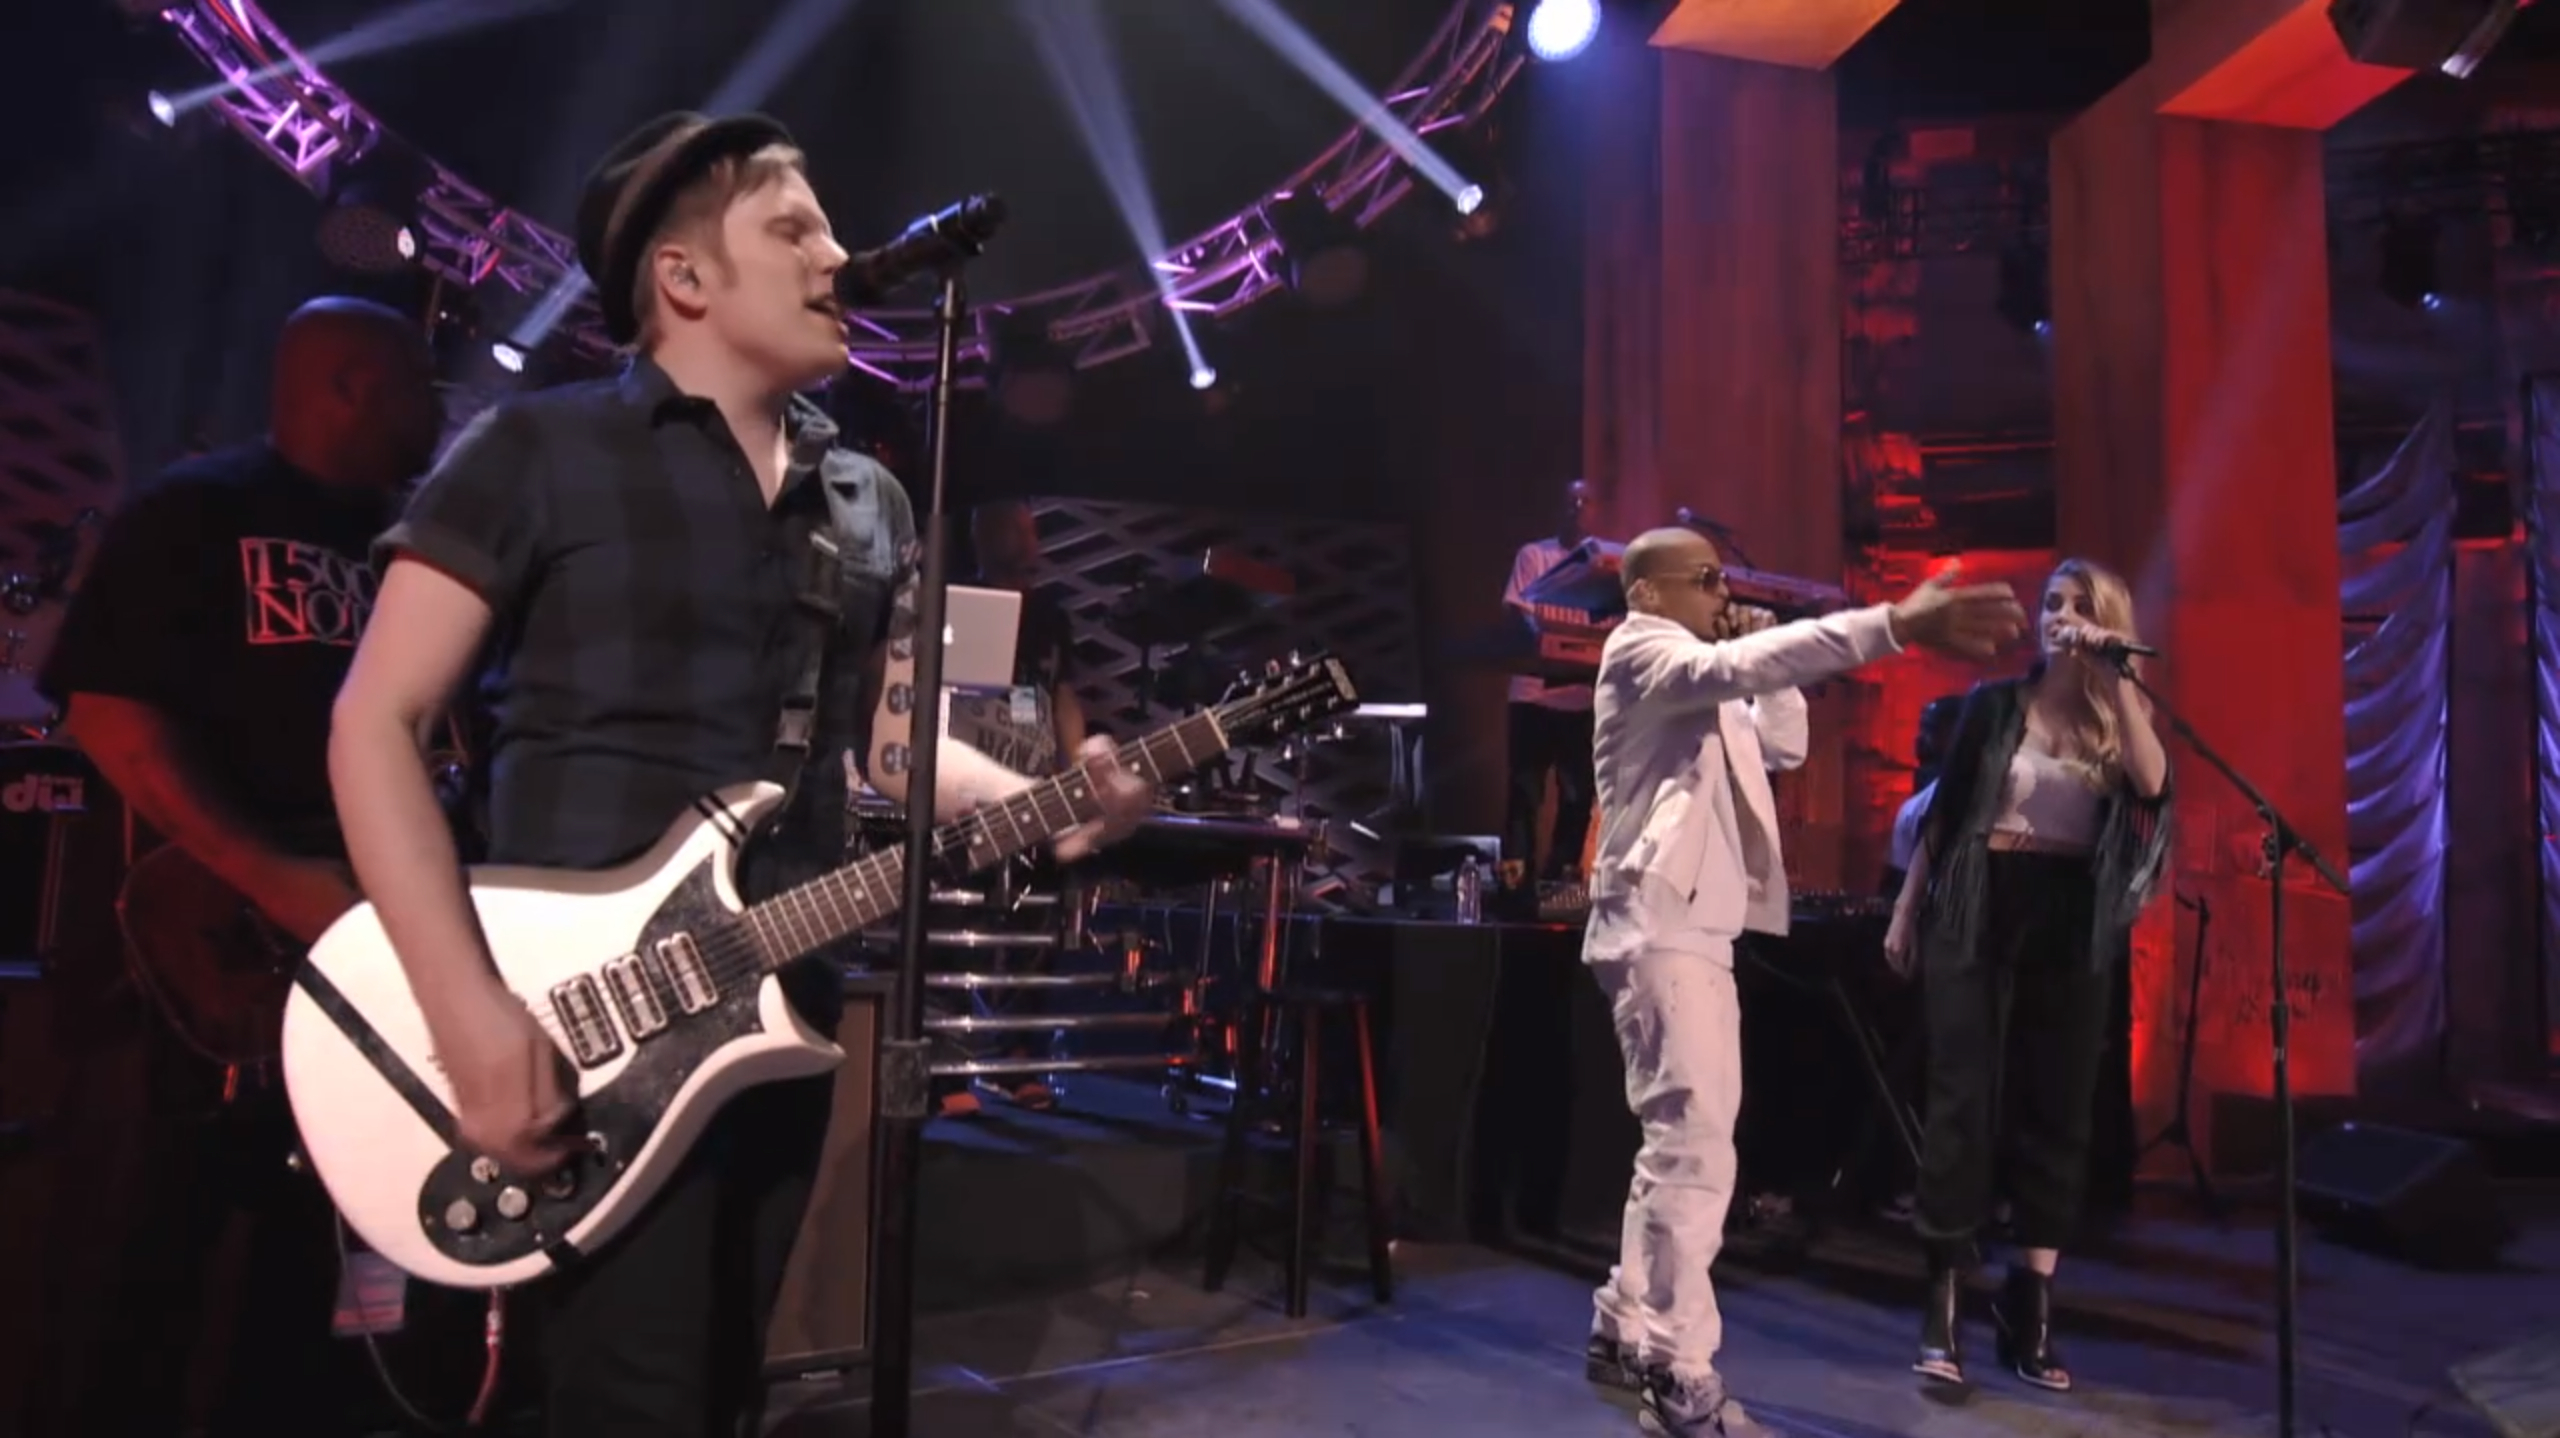 Watch T.I., Fall Out Boy, &#038; London Grammar Perform Together On The Premiere Episode Of VH1&#8217;s <em>SoundClash</em>